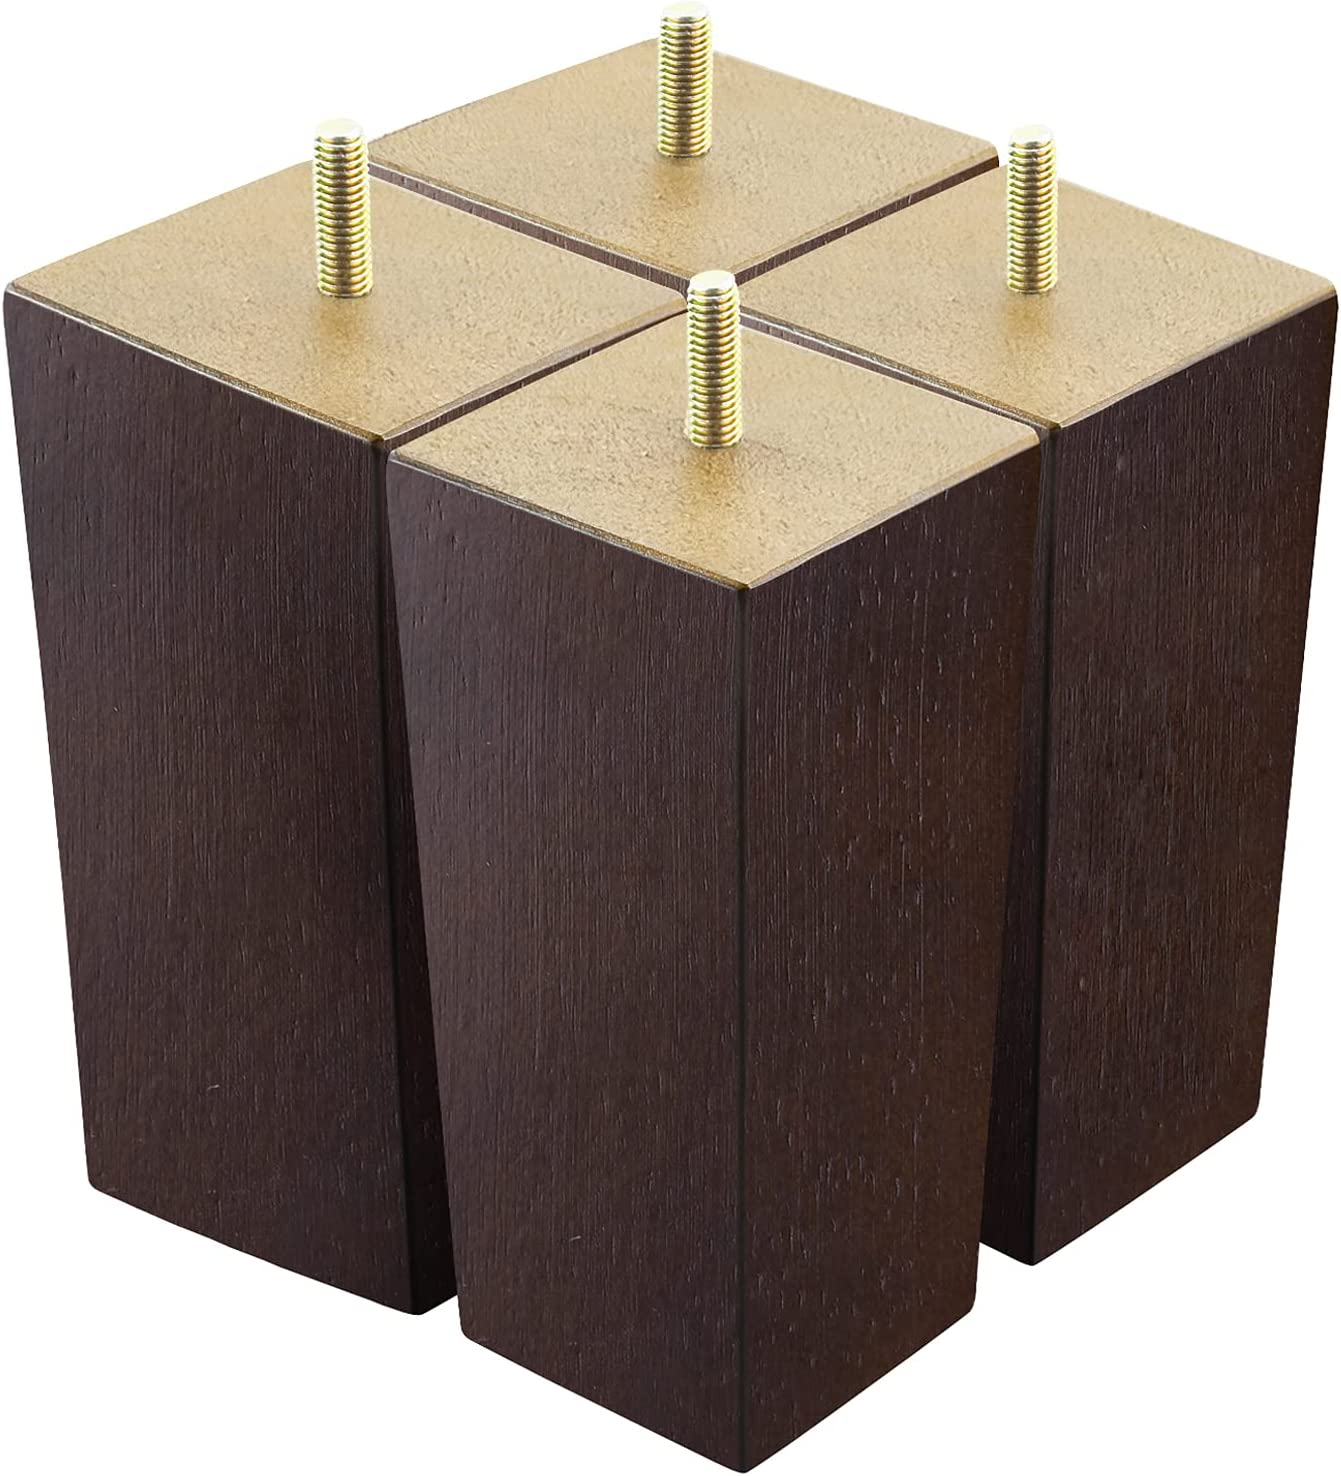 6 inch Couch Legs for Furniture Set of 4, Square Wood Furniture Sofa Legs Replacement for Furniture Feet,Coffee Table, Dresser, Cabinet, Bed,Mid Century Brown Color